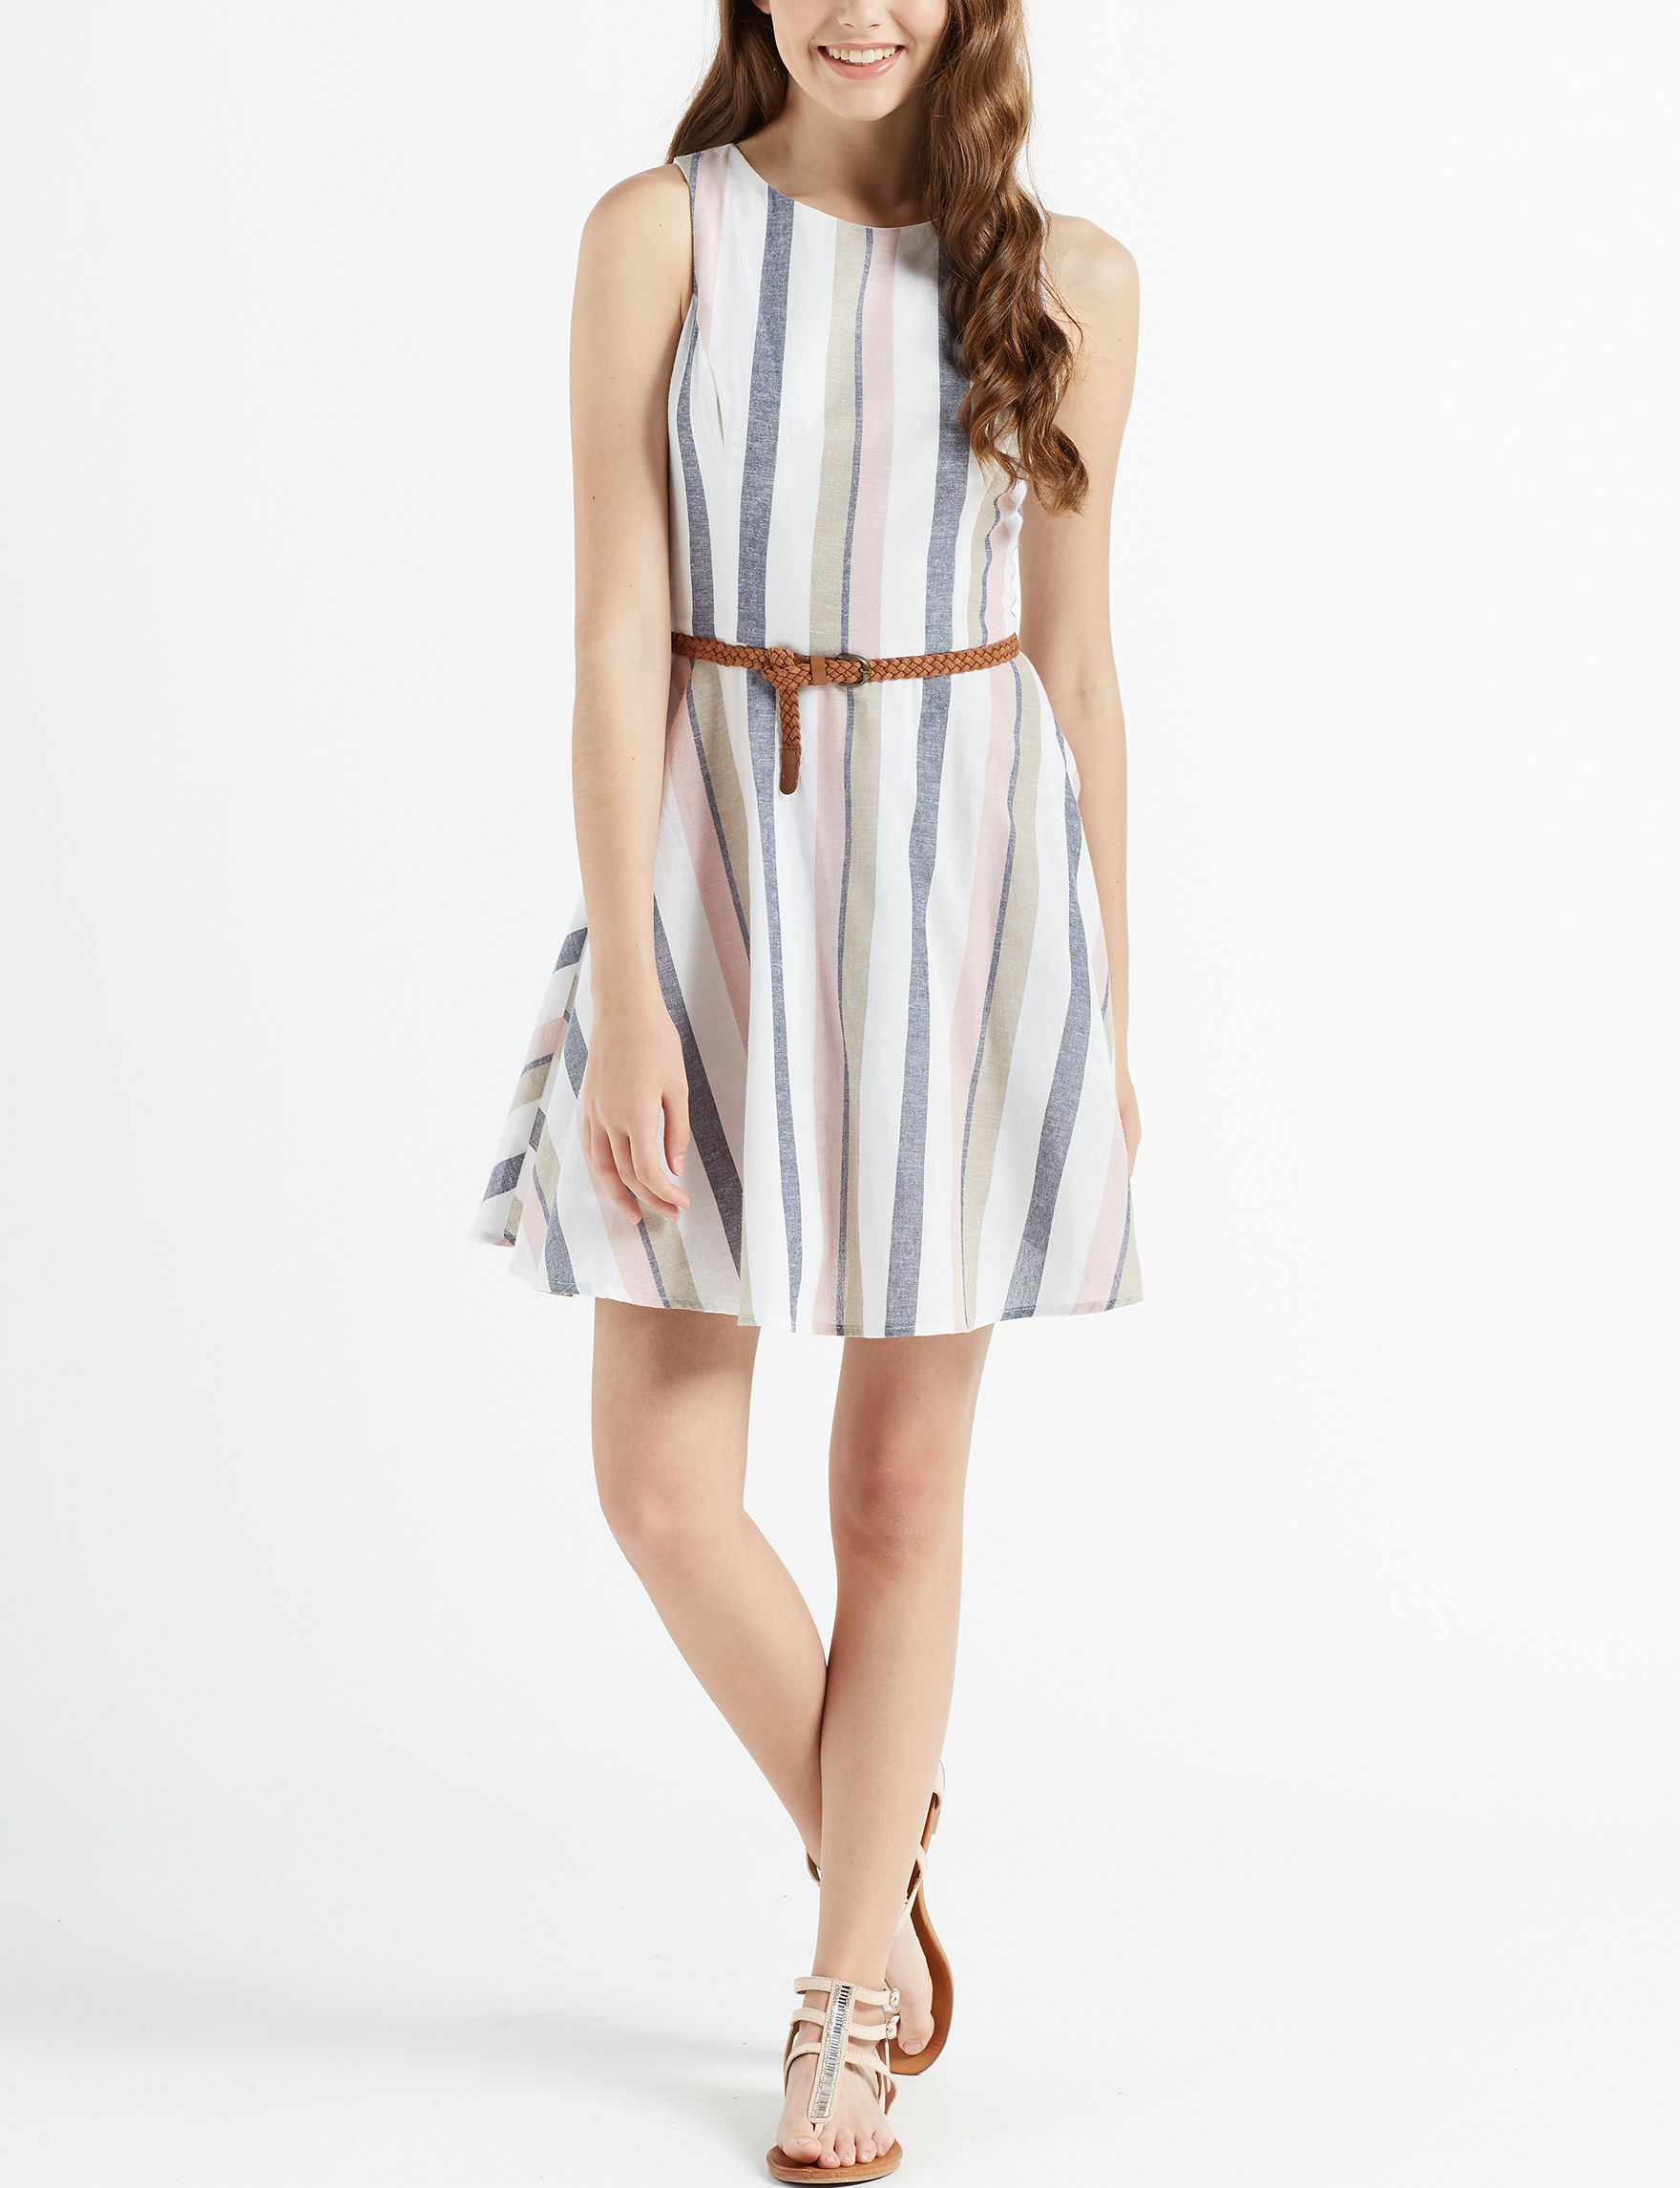 Bailey Blue White Everyday & Casual Fit & Flare Dresses